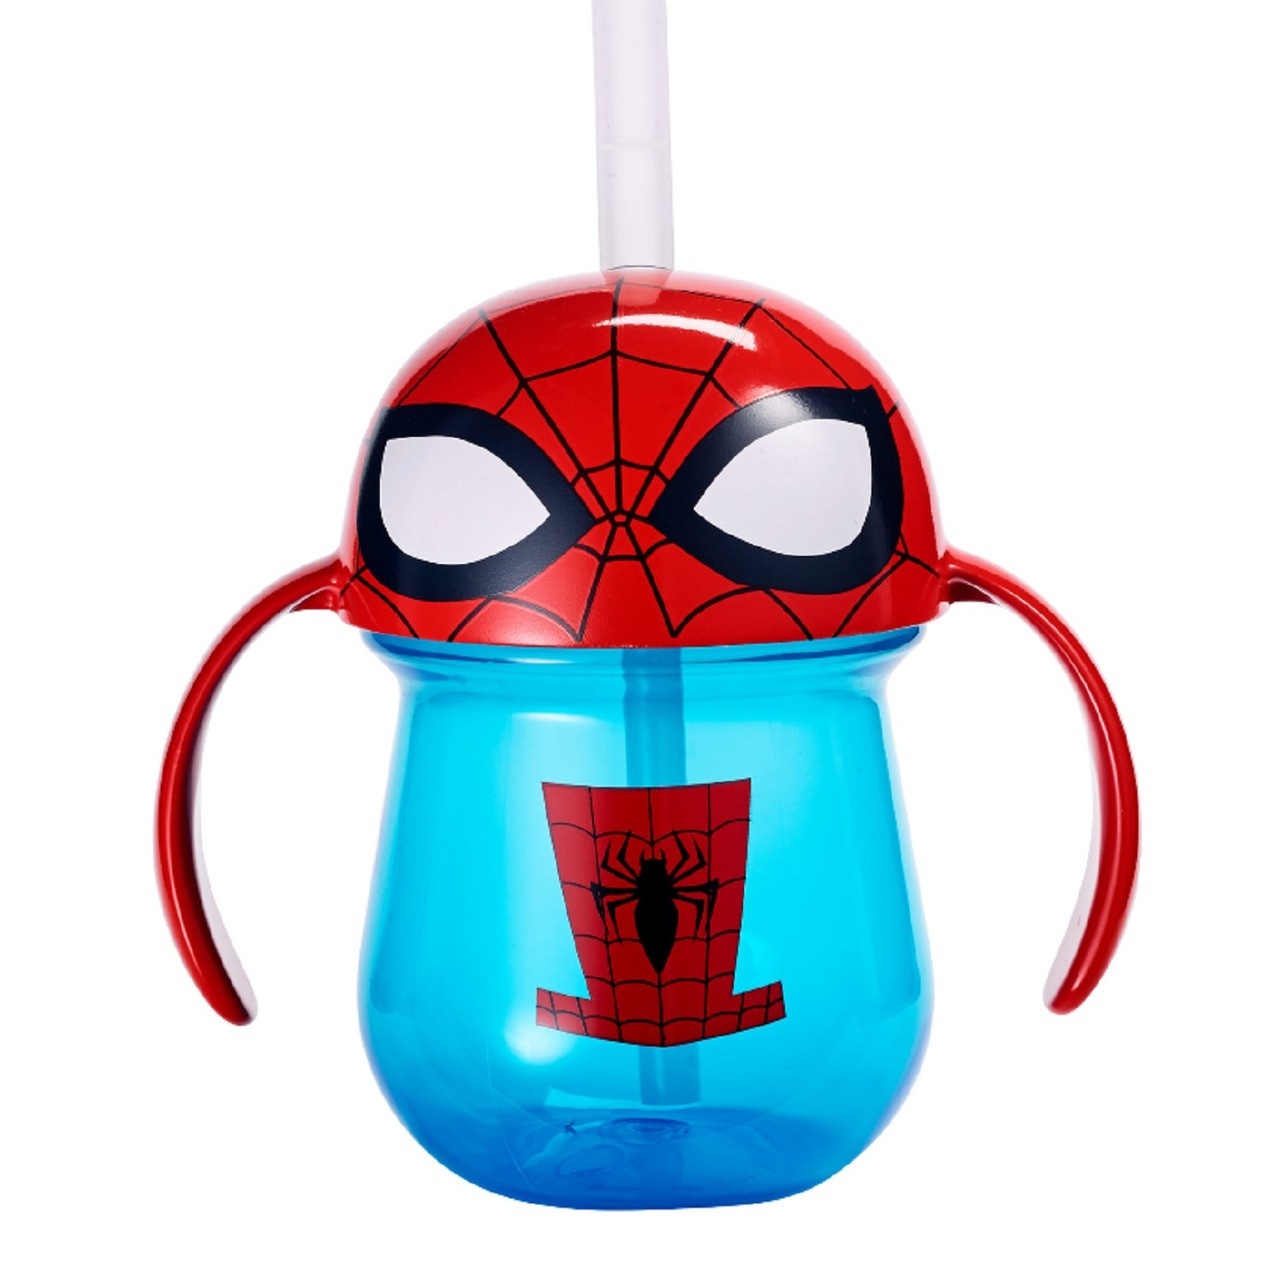 Sippy Cup - Marvel Spiderman - Drink Bottle - Small